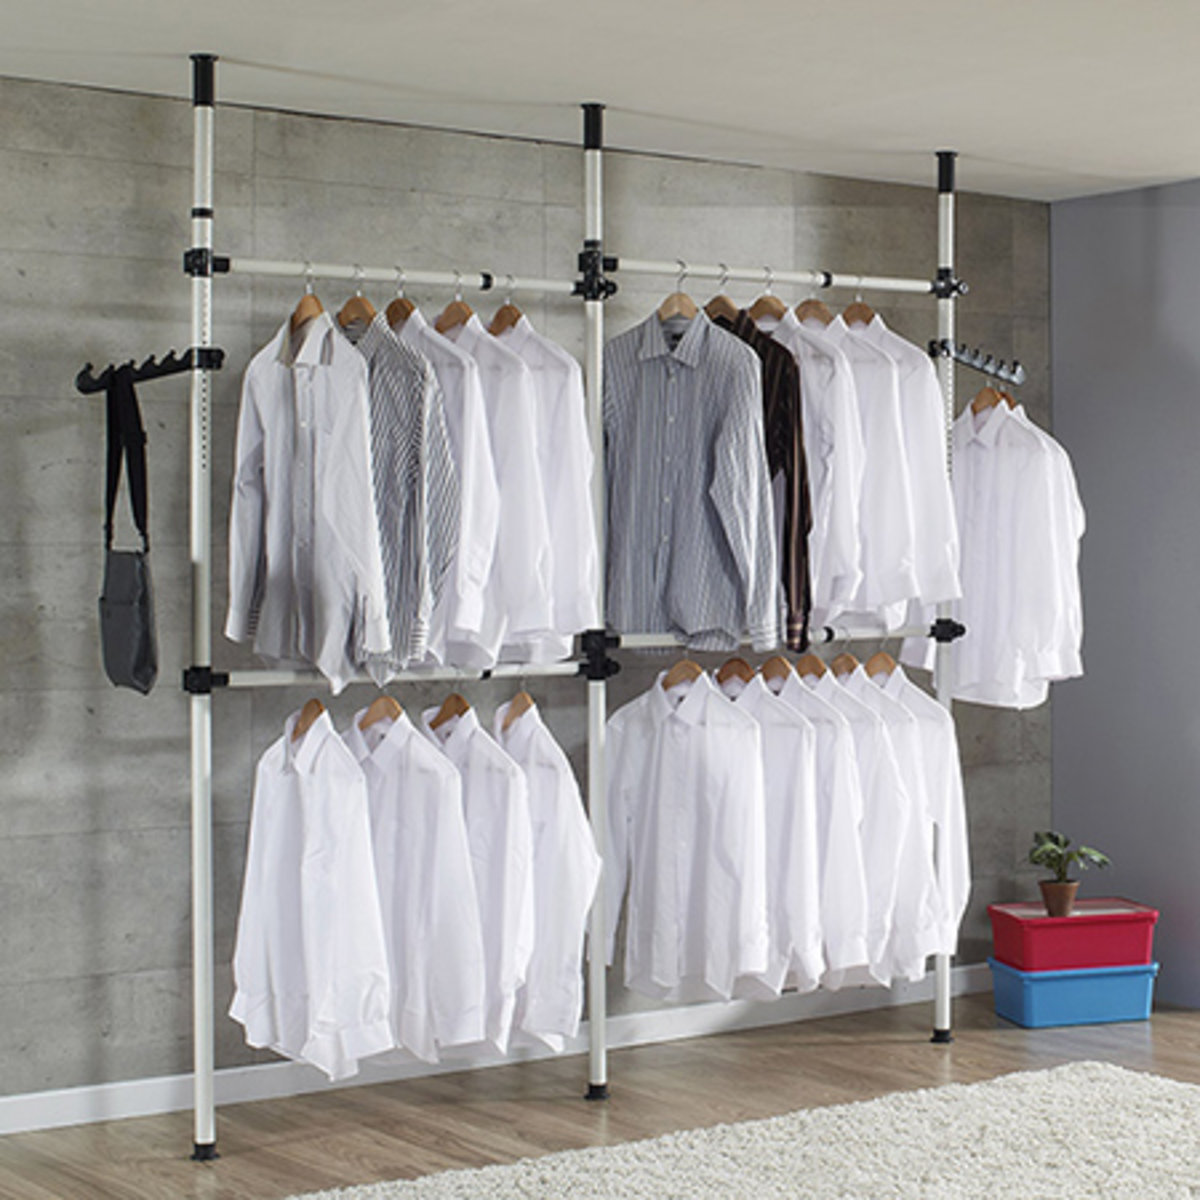 Floor To Ceiling 3 Poles Multi Function Clothes Rack White Rk827